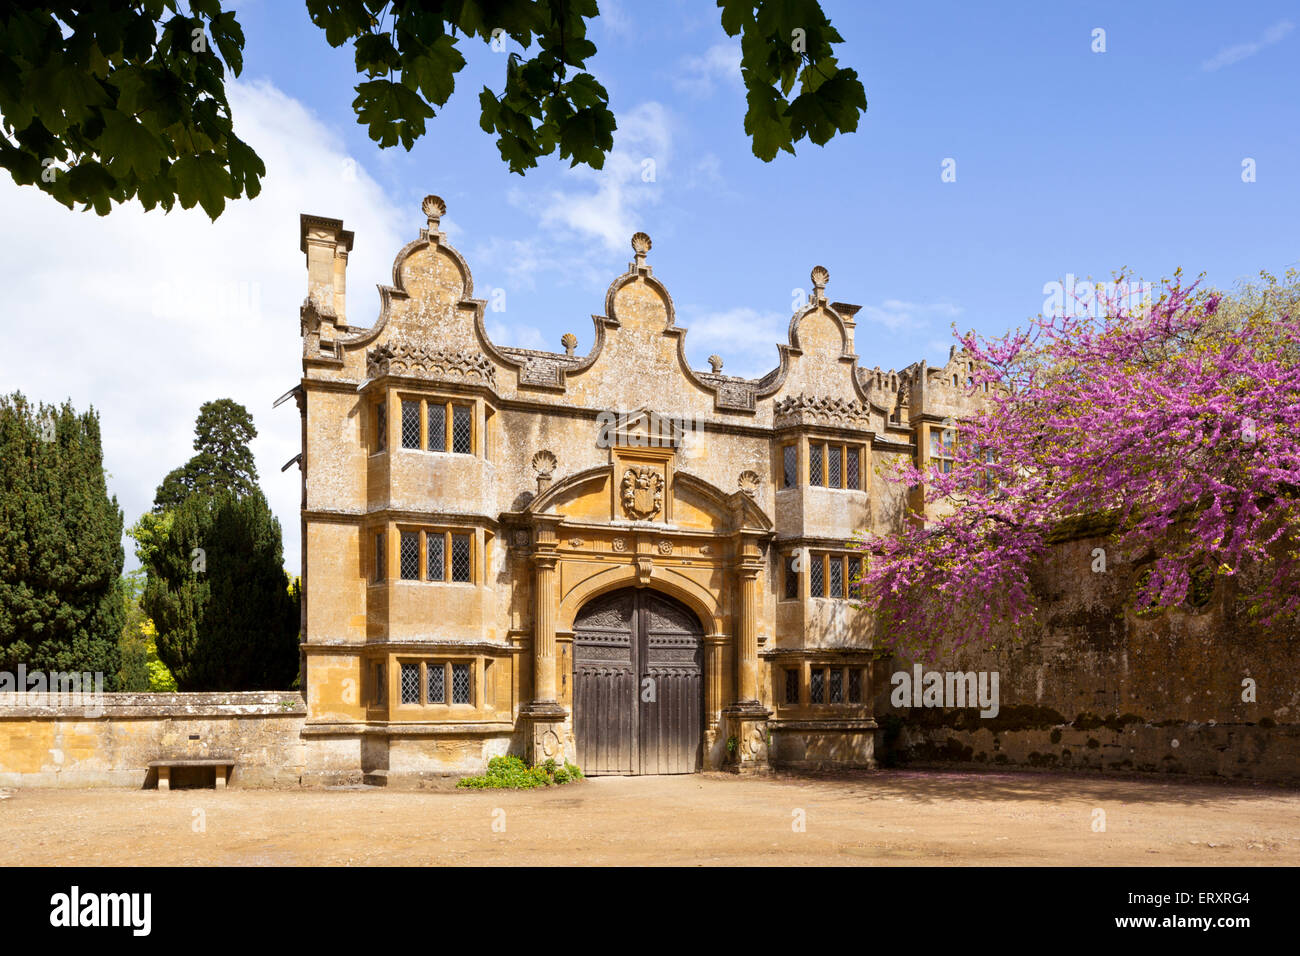 Springtime in the Cotswolds - The Jacobean gatehouse to Stanway Manor in the Cotswold village of Stanway, Gloucestershire Stock Photo